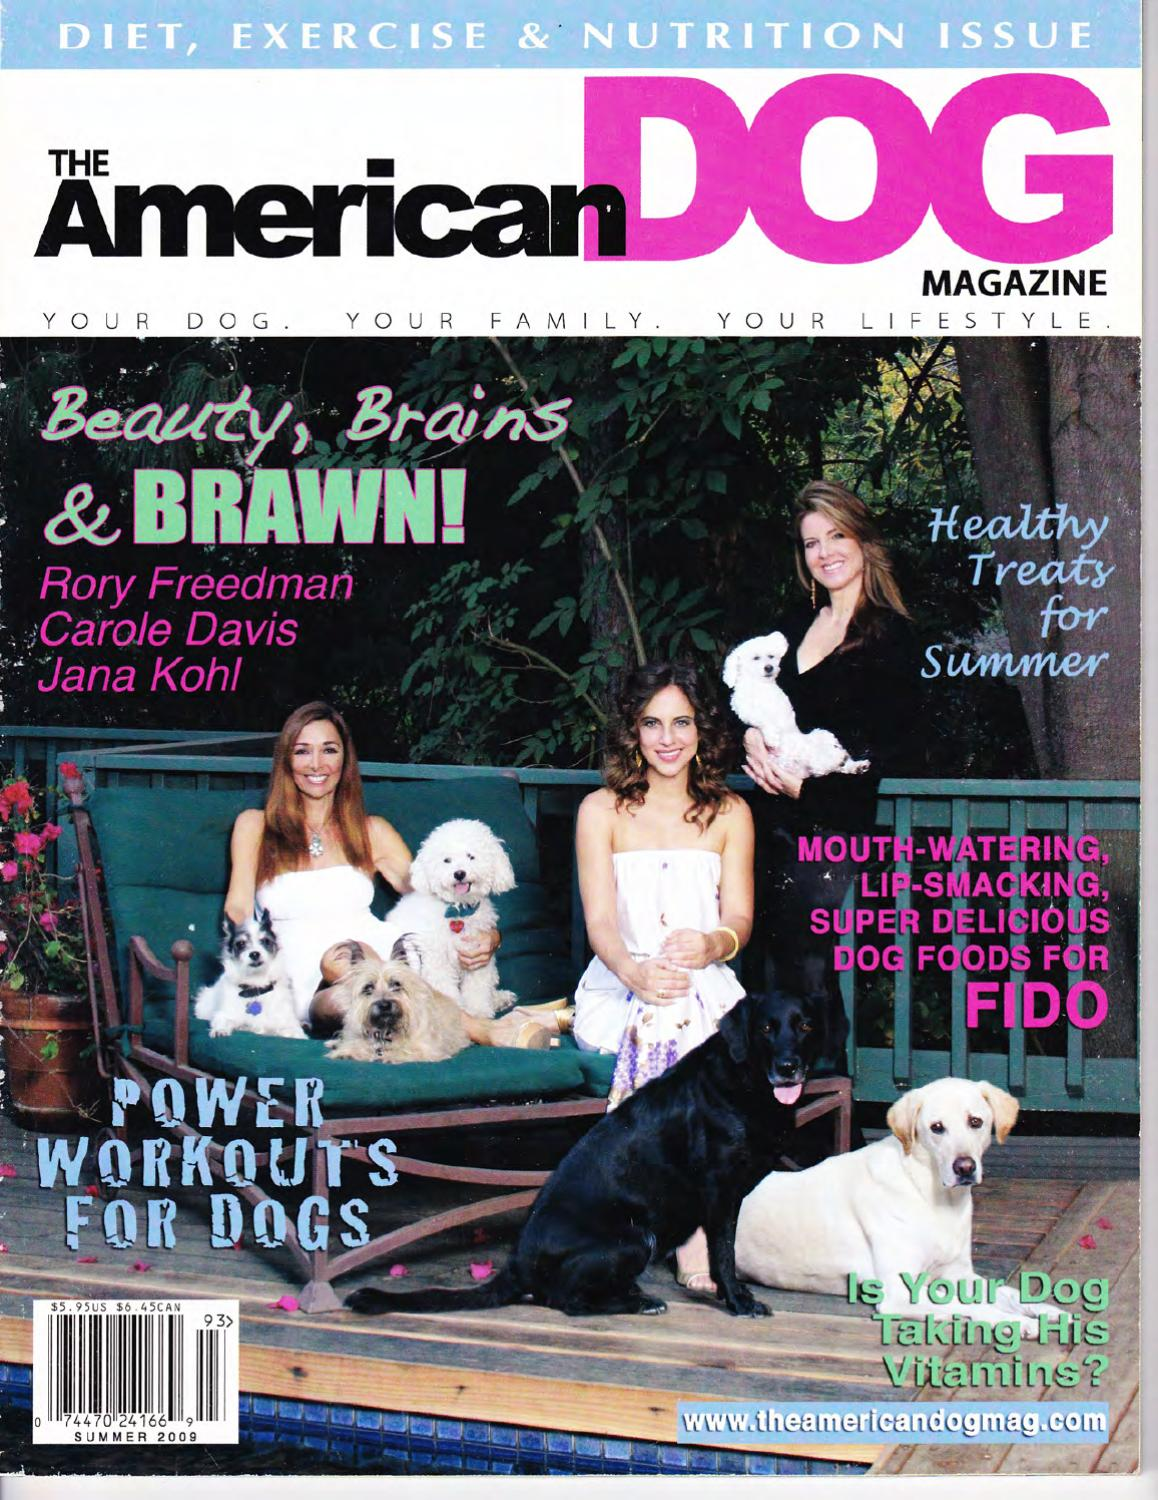 The American Dog Magazine - Summer 2009 by The American Dog Magazine